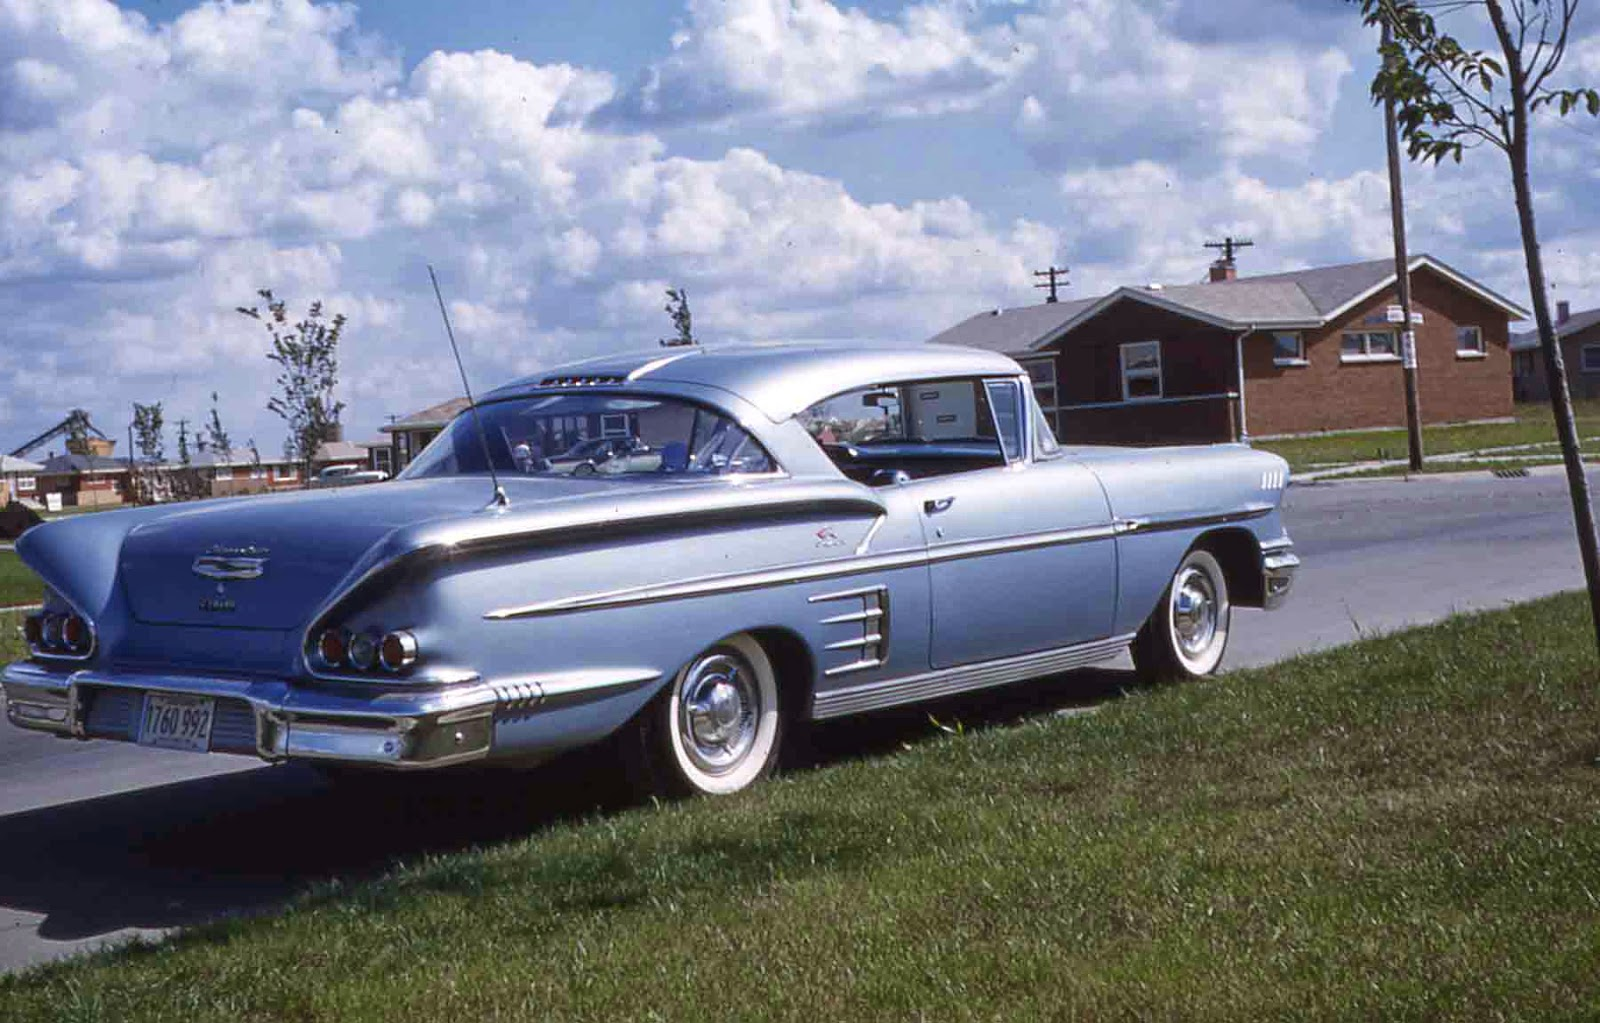 Yvind Eiesland Sin Cougar moreover f additionally Chevy Impala Coupe Mint Green Ac Car besides Impconv Intb besides Chevrolet Impala. on 1958 chevrolet impala sport coupe